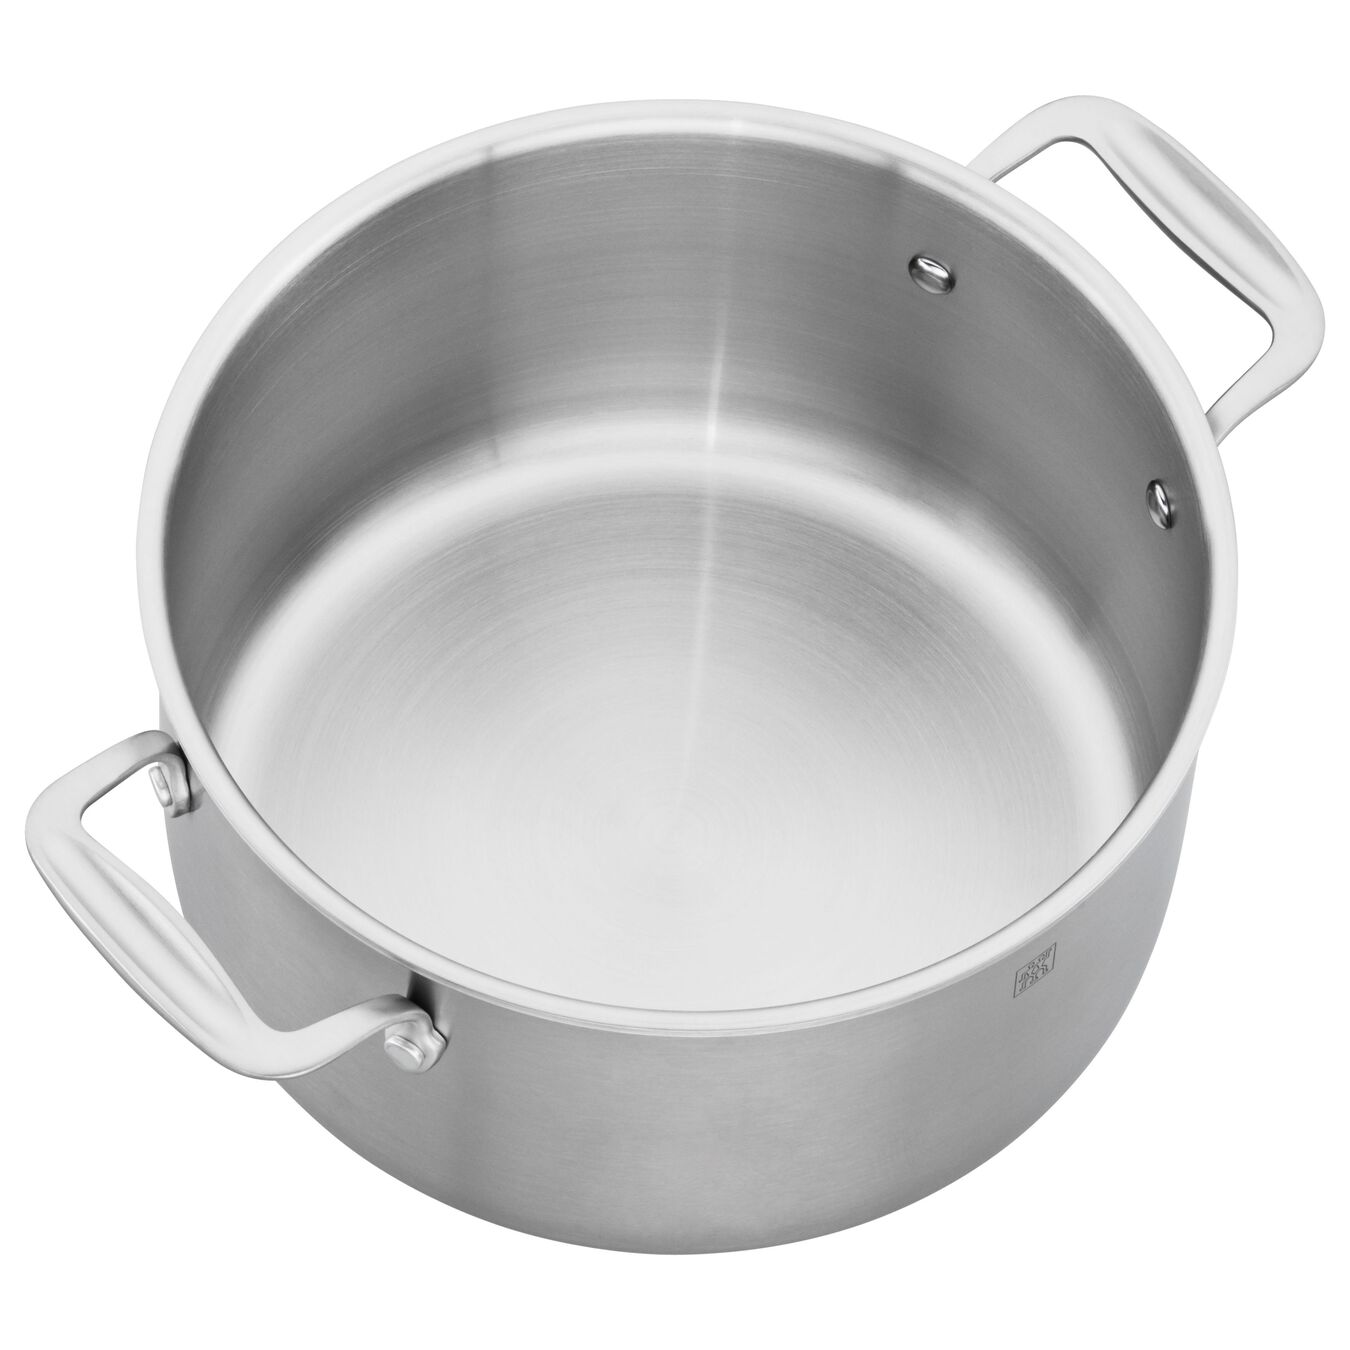 3-ply 6-qt Stainless Steel Dutch Oven,,large 3